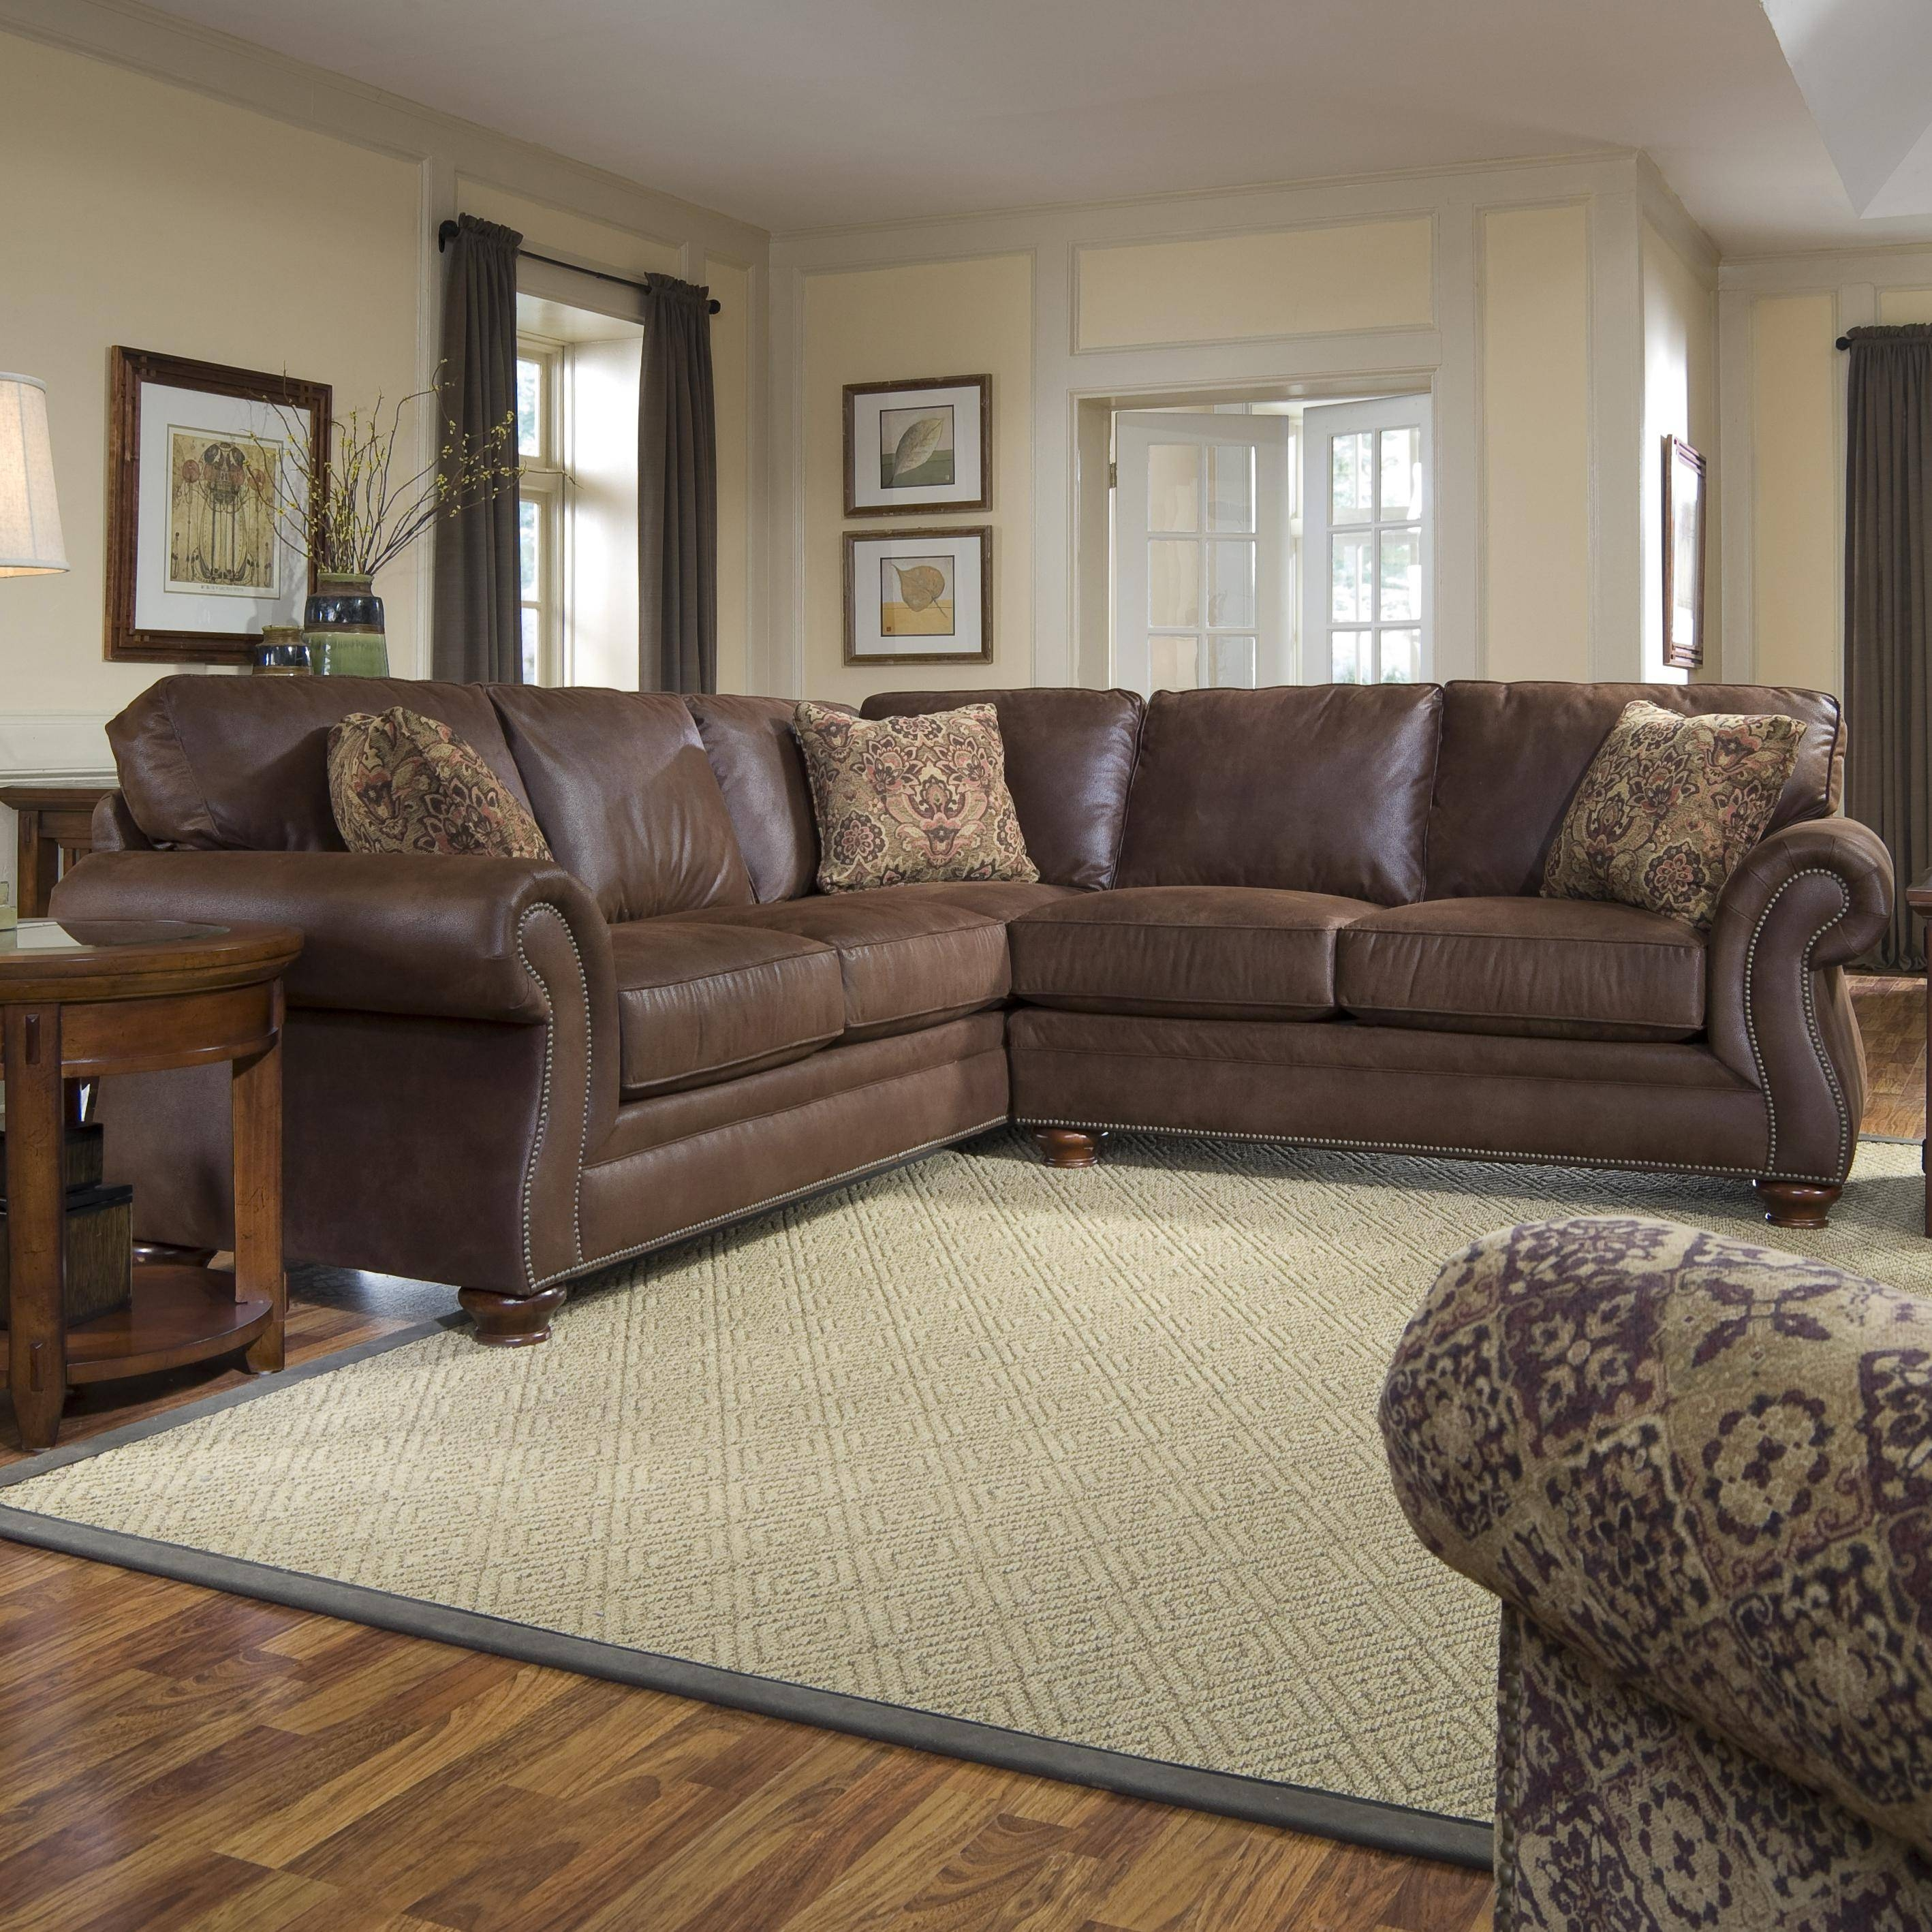 Broyhill Furniture Laramie 3 Piece Wedge Sectional Sofa - Wayside regarding Broyhill Sectional Sofas (Image 8 of 30)